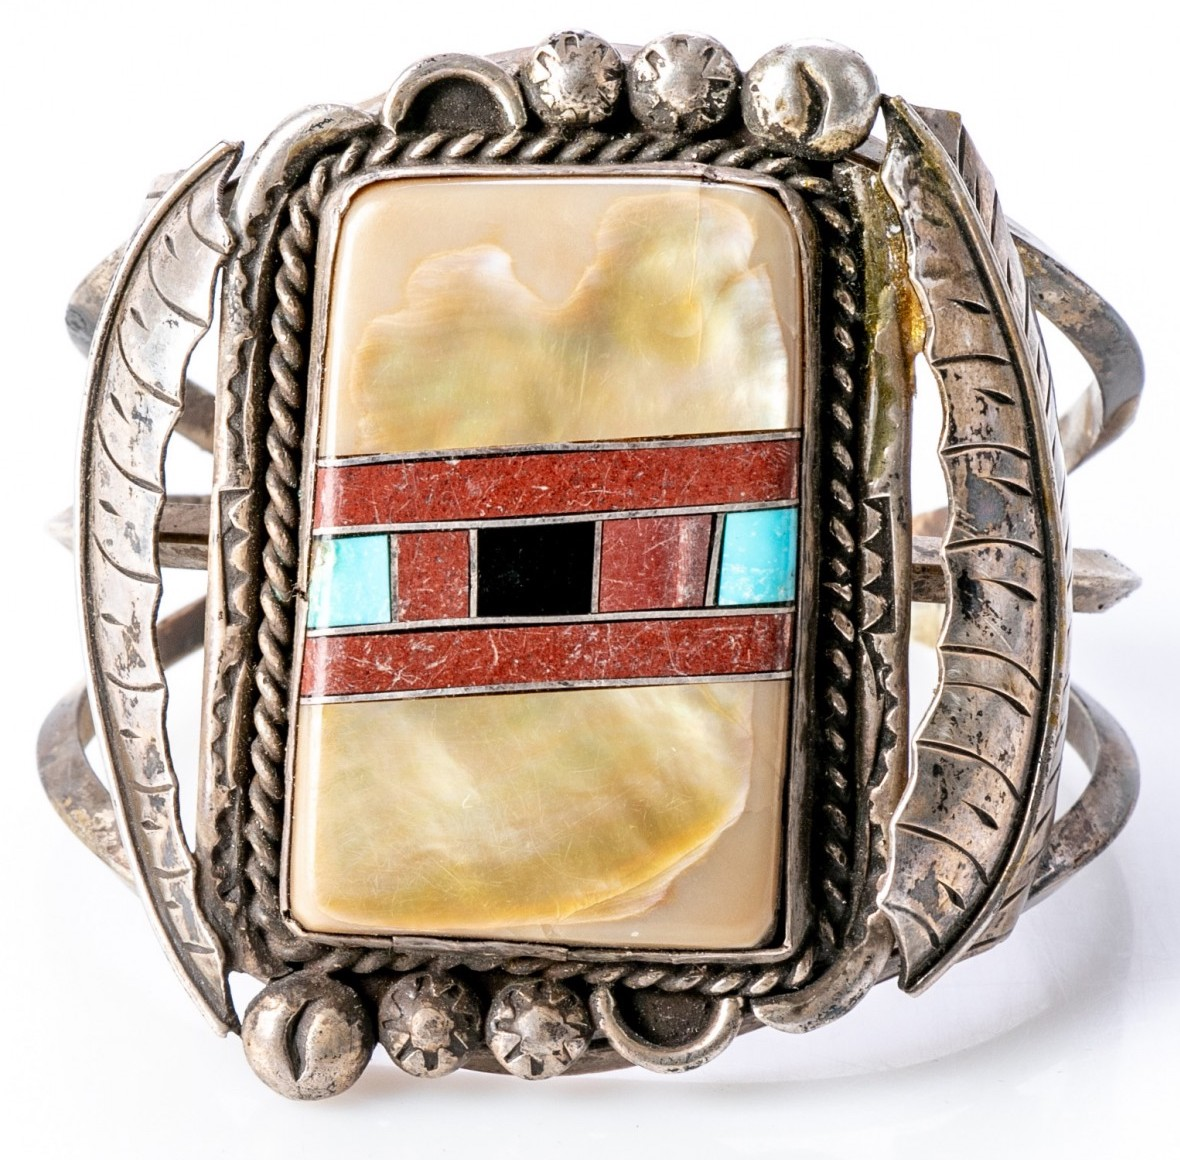 Native American Jewelry -- Navajo, Hopi, Crow, Zuni, and more